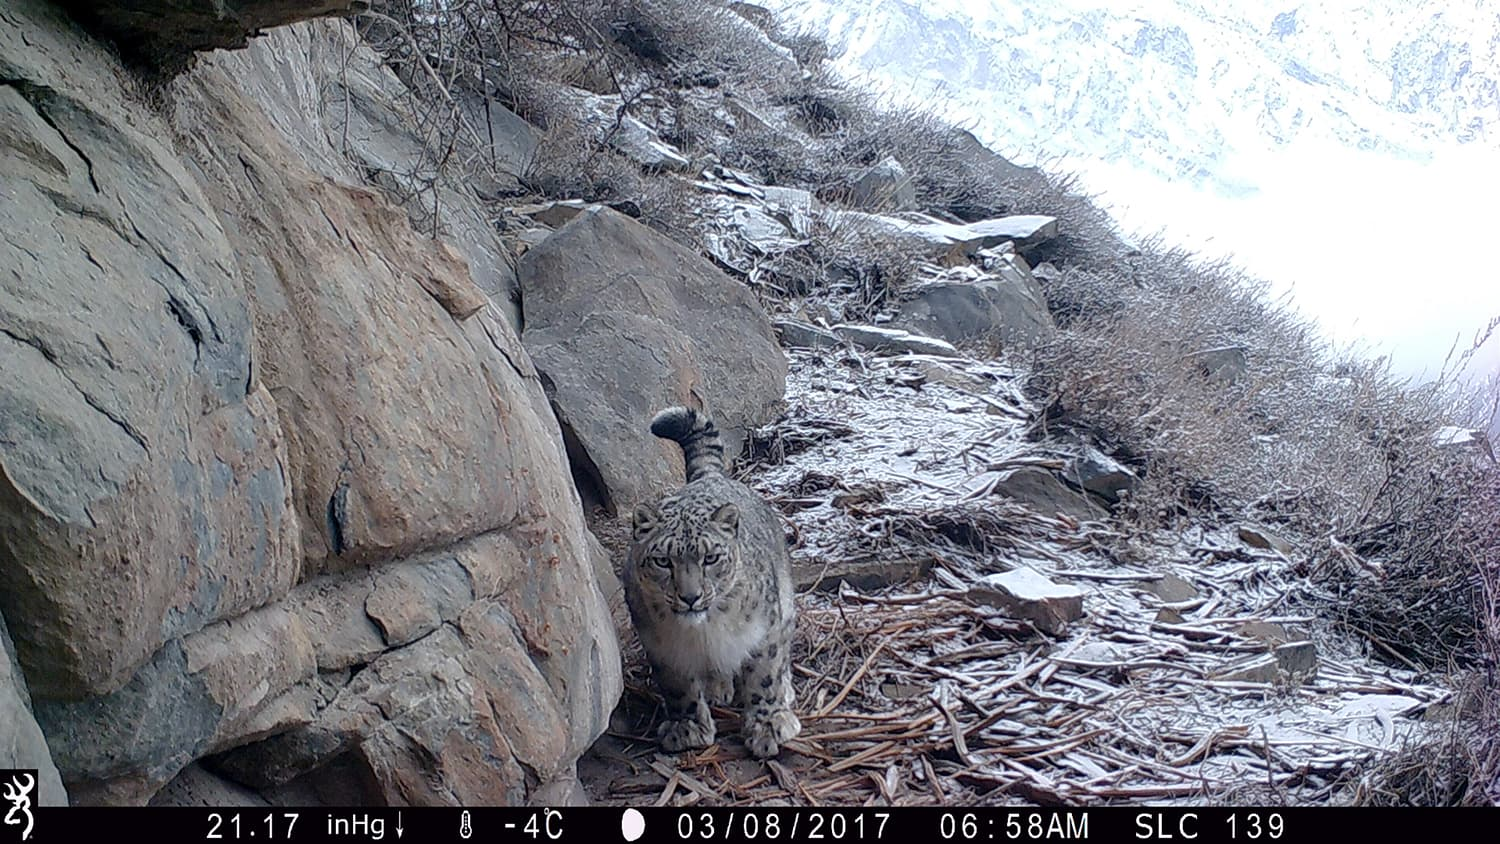 Snow leopard in Roundu Valley. -All photos and footage by Baltistan Wildlife Conservation and Development Organization (BWCDO)